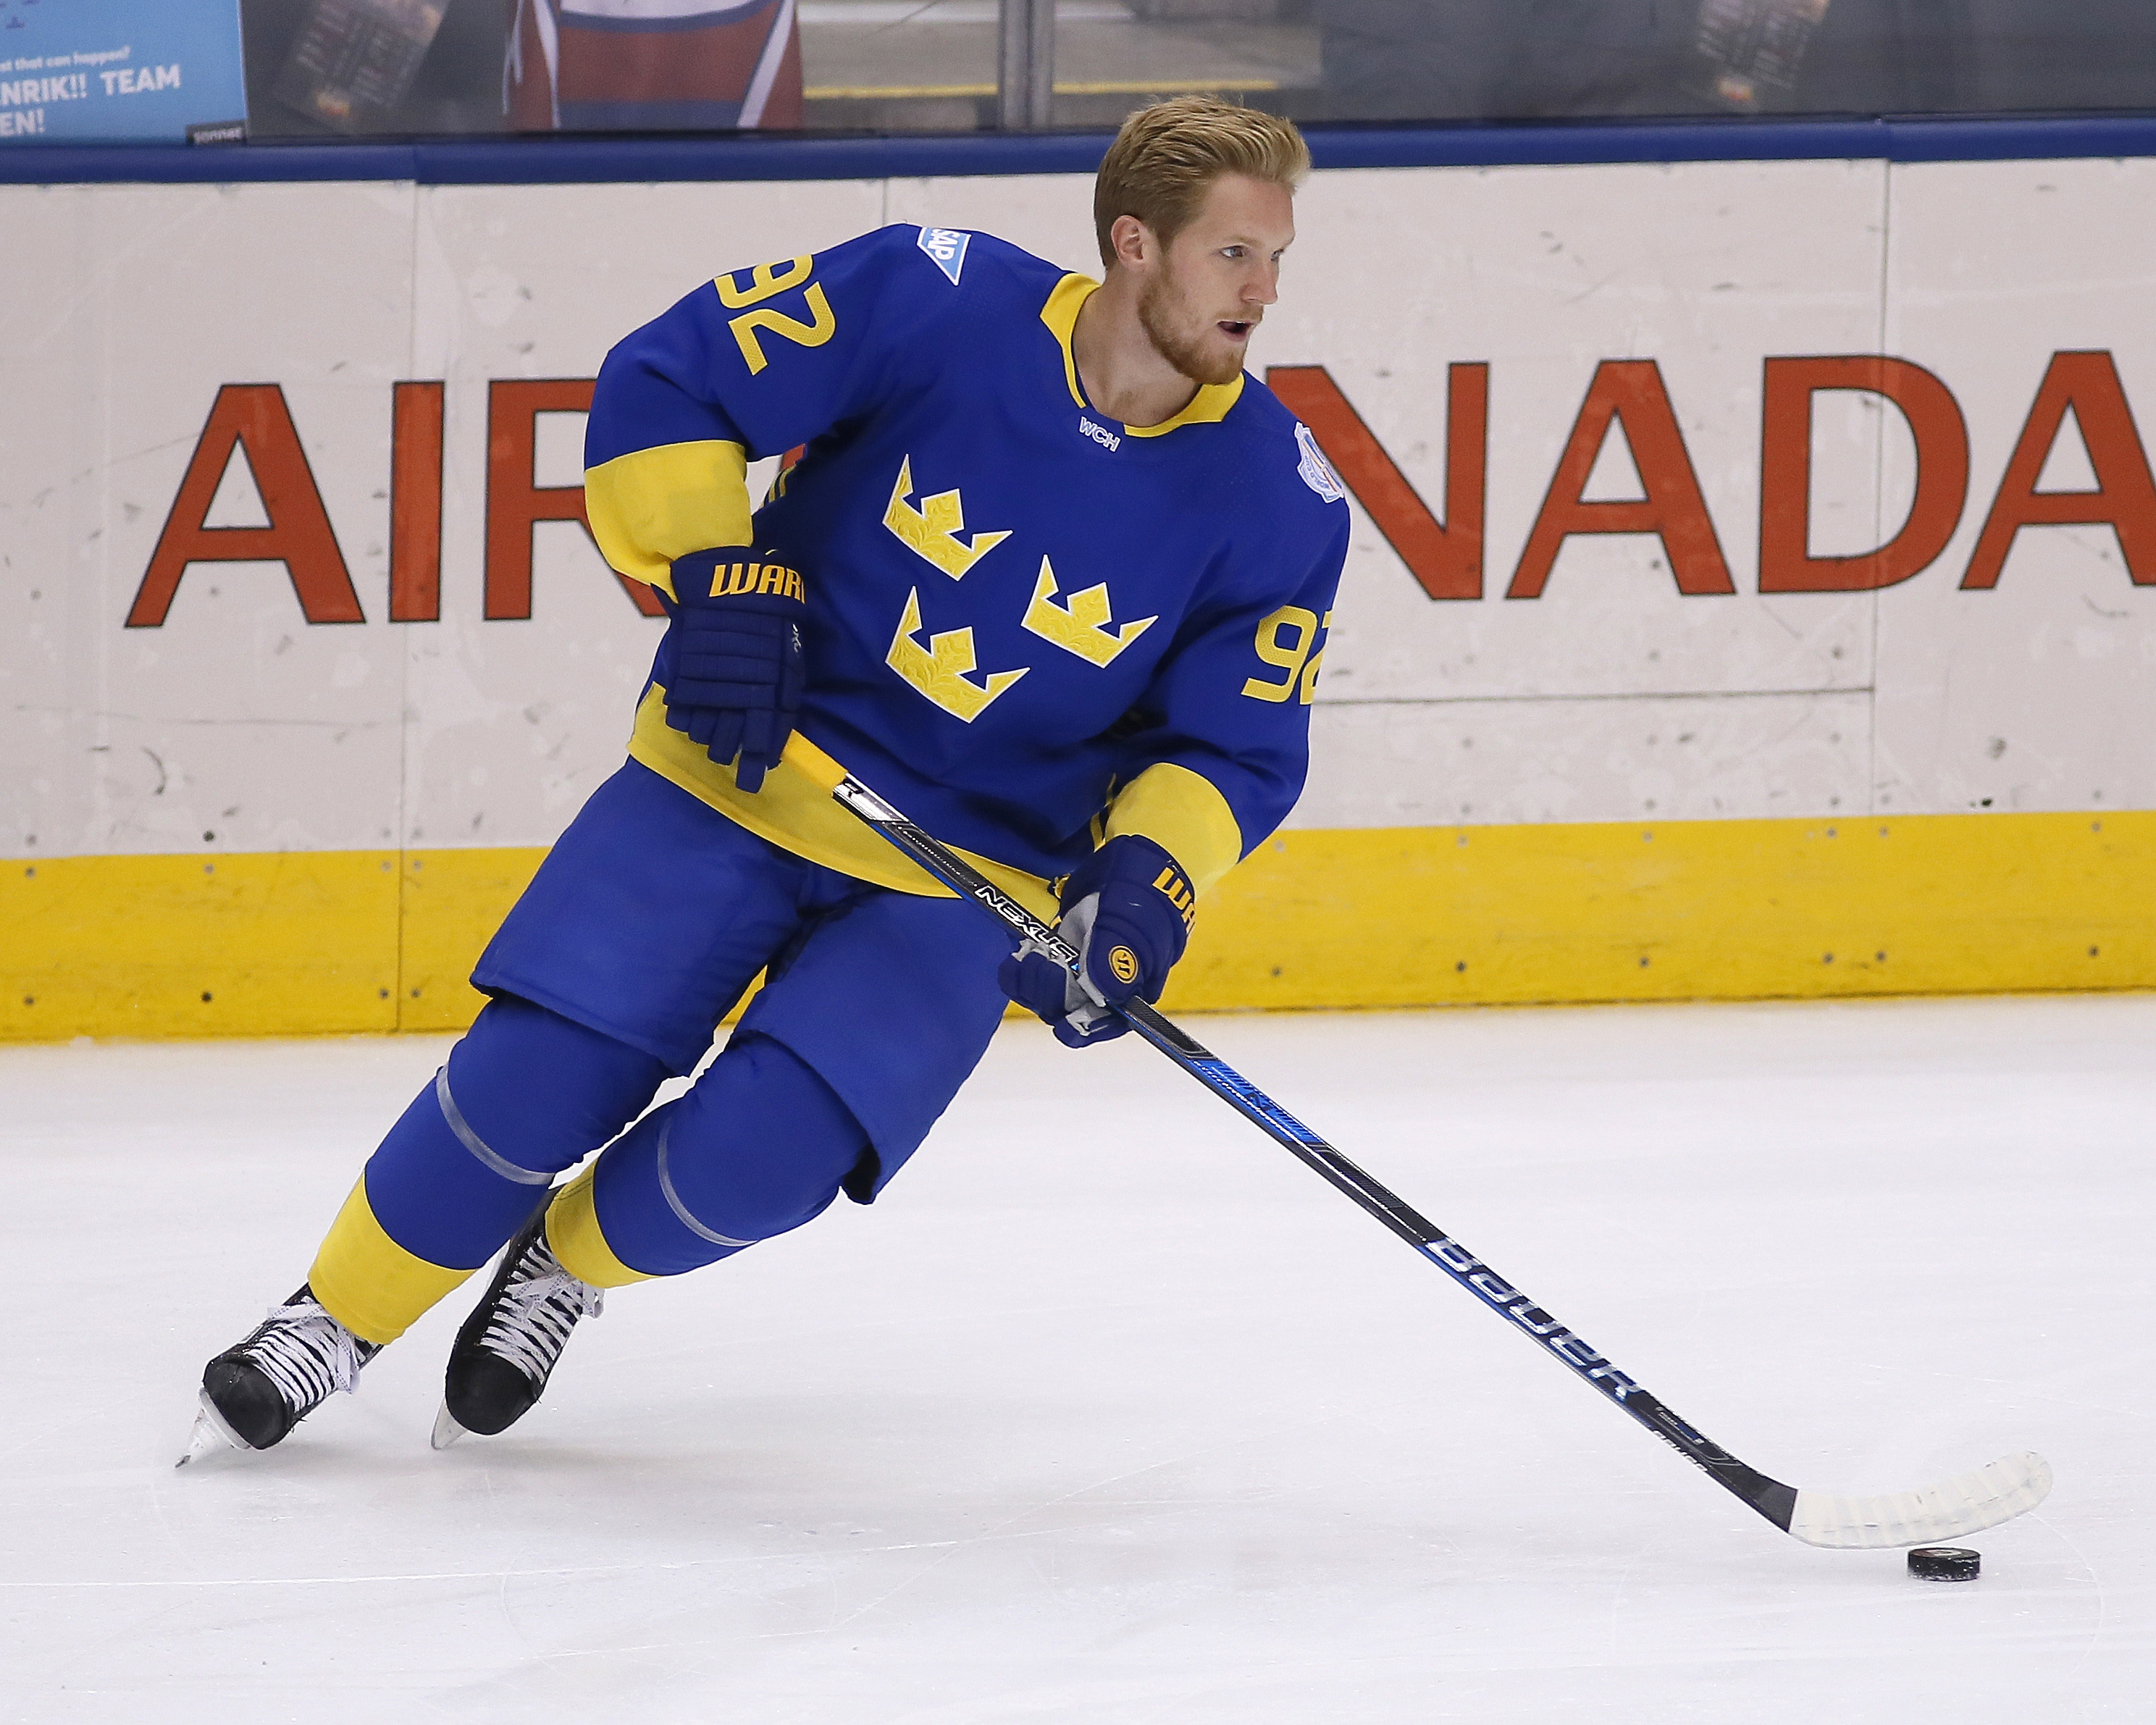 9564022-hockey-world-cup-of-hockey-semifinals-europe-vs-sweden